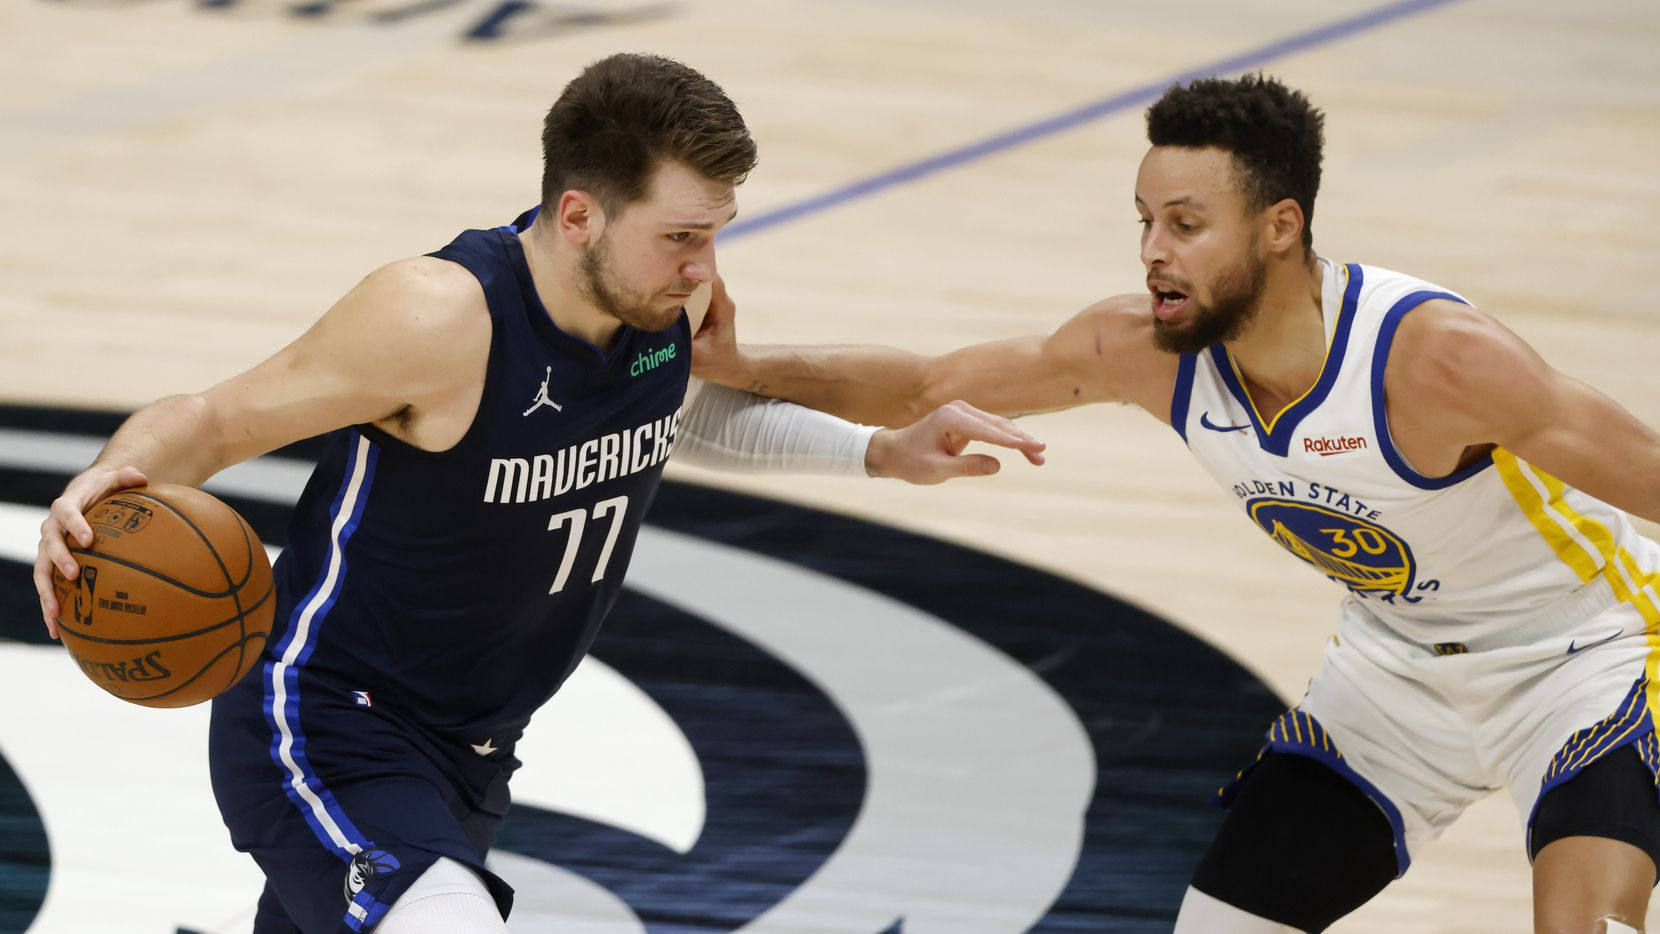 Dallas Mavericks guard Luka Doncic (77) drives on Golden State Warriors guard Stephen Curry (30) during the third quarter of play at American Airlines Center on Saturday, February 6, 2021 in Dallas.